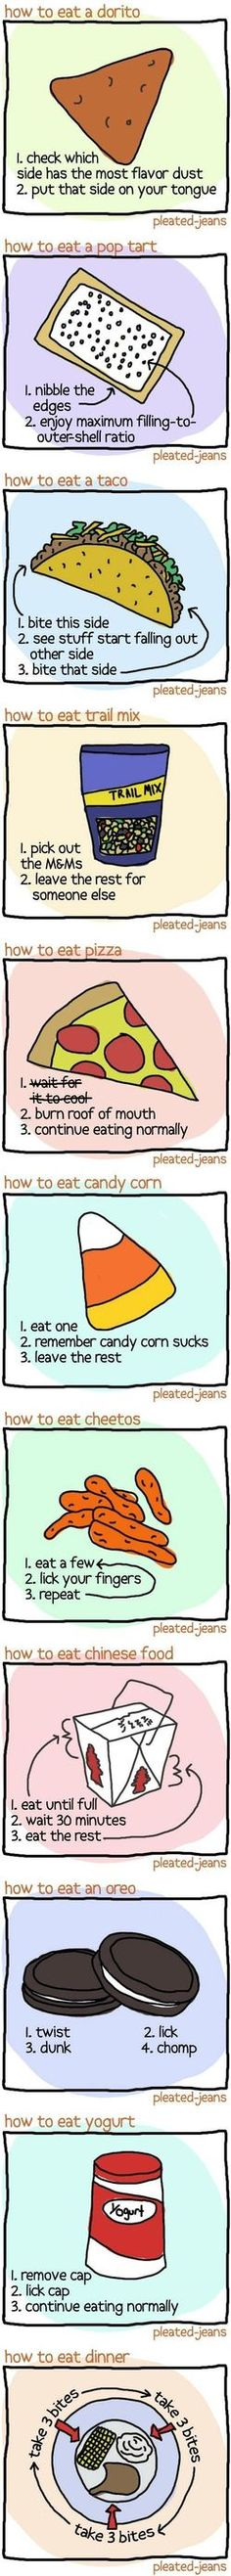 I agree with all except the candy corn which i find delicious and will continue to eat :)